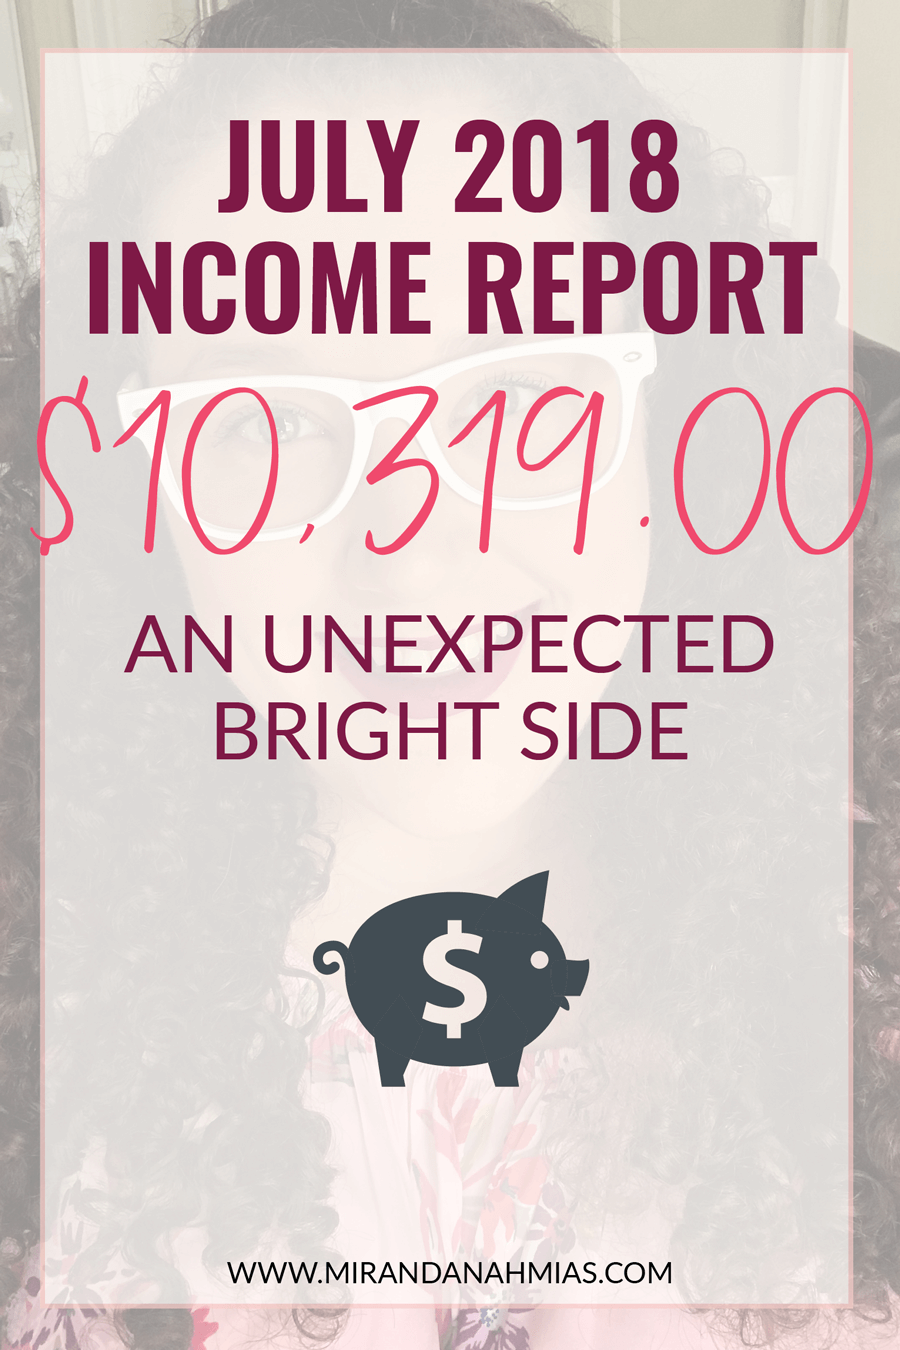 July 2018 Income Report | Miranda Nahmias & Co. Systematic Marketing